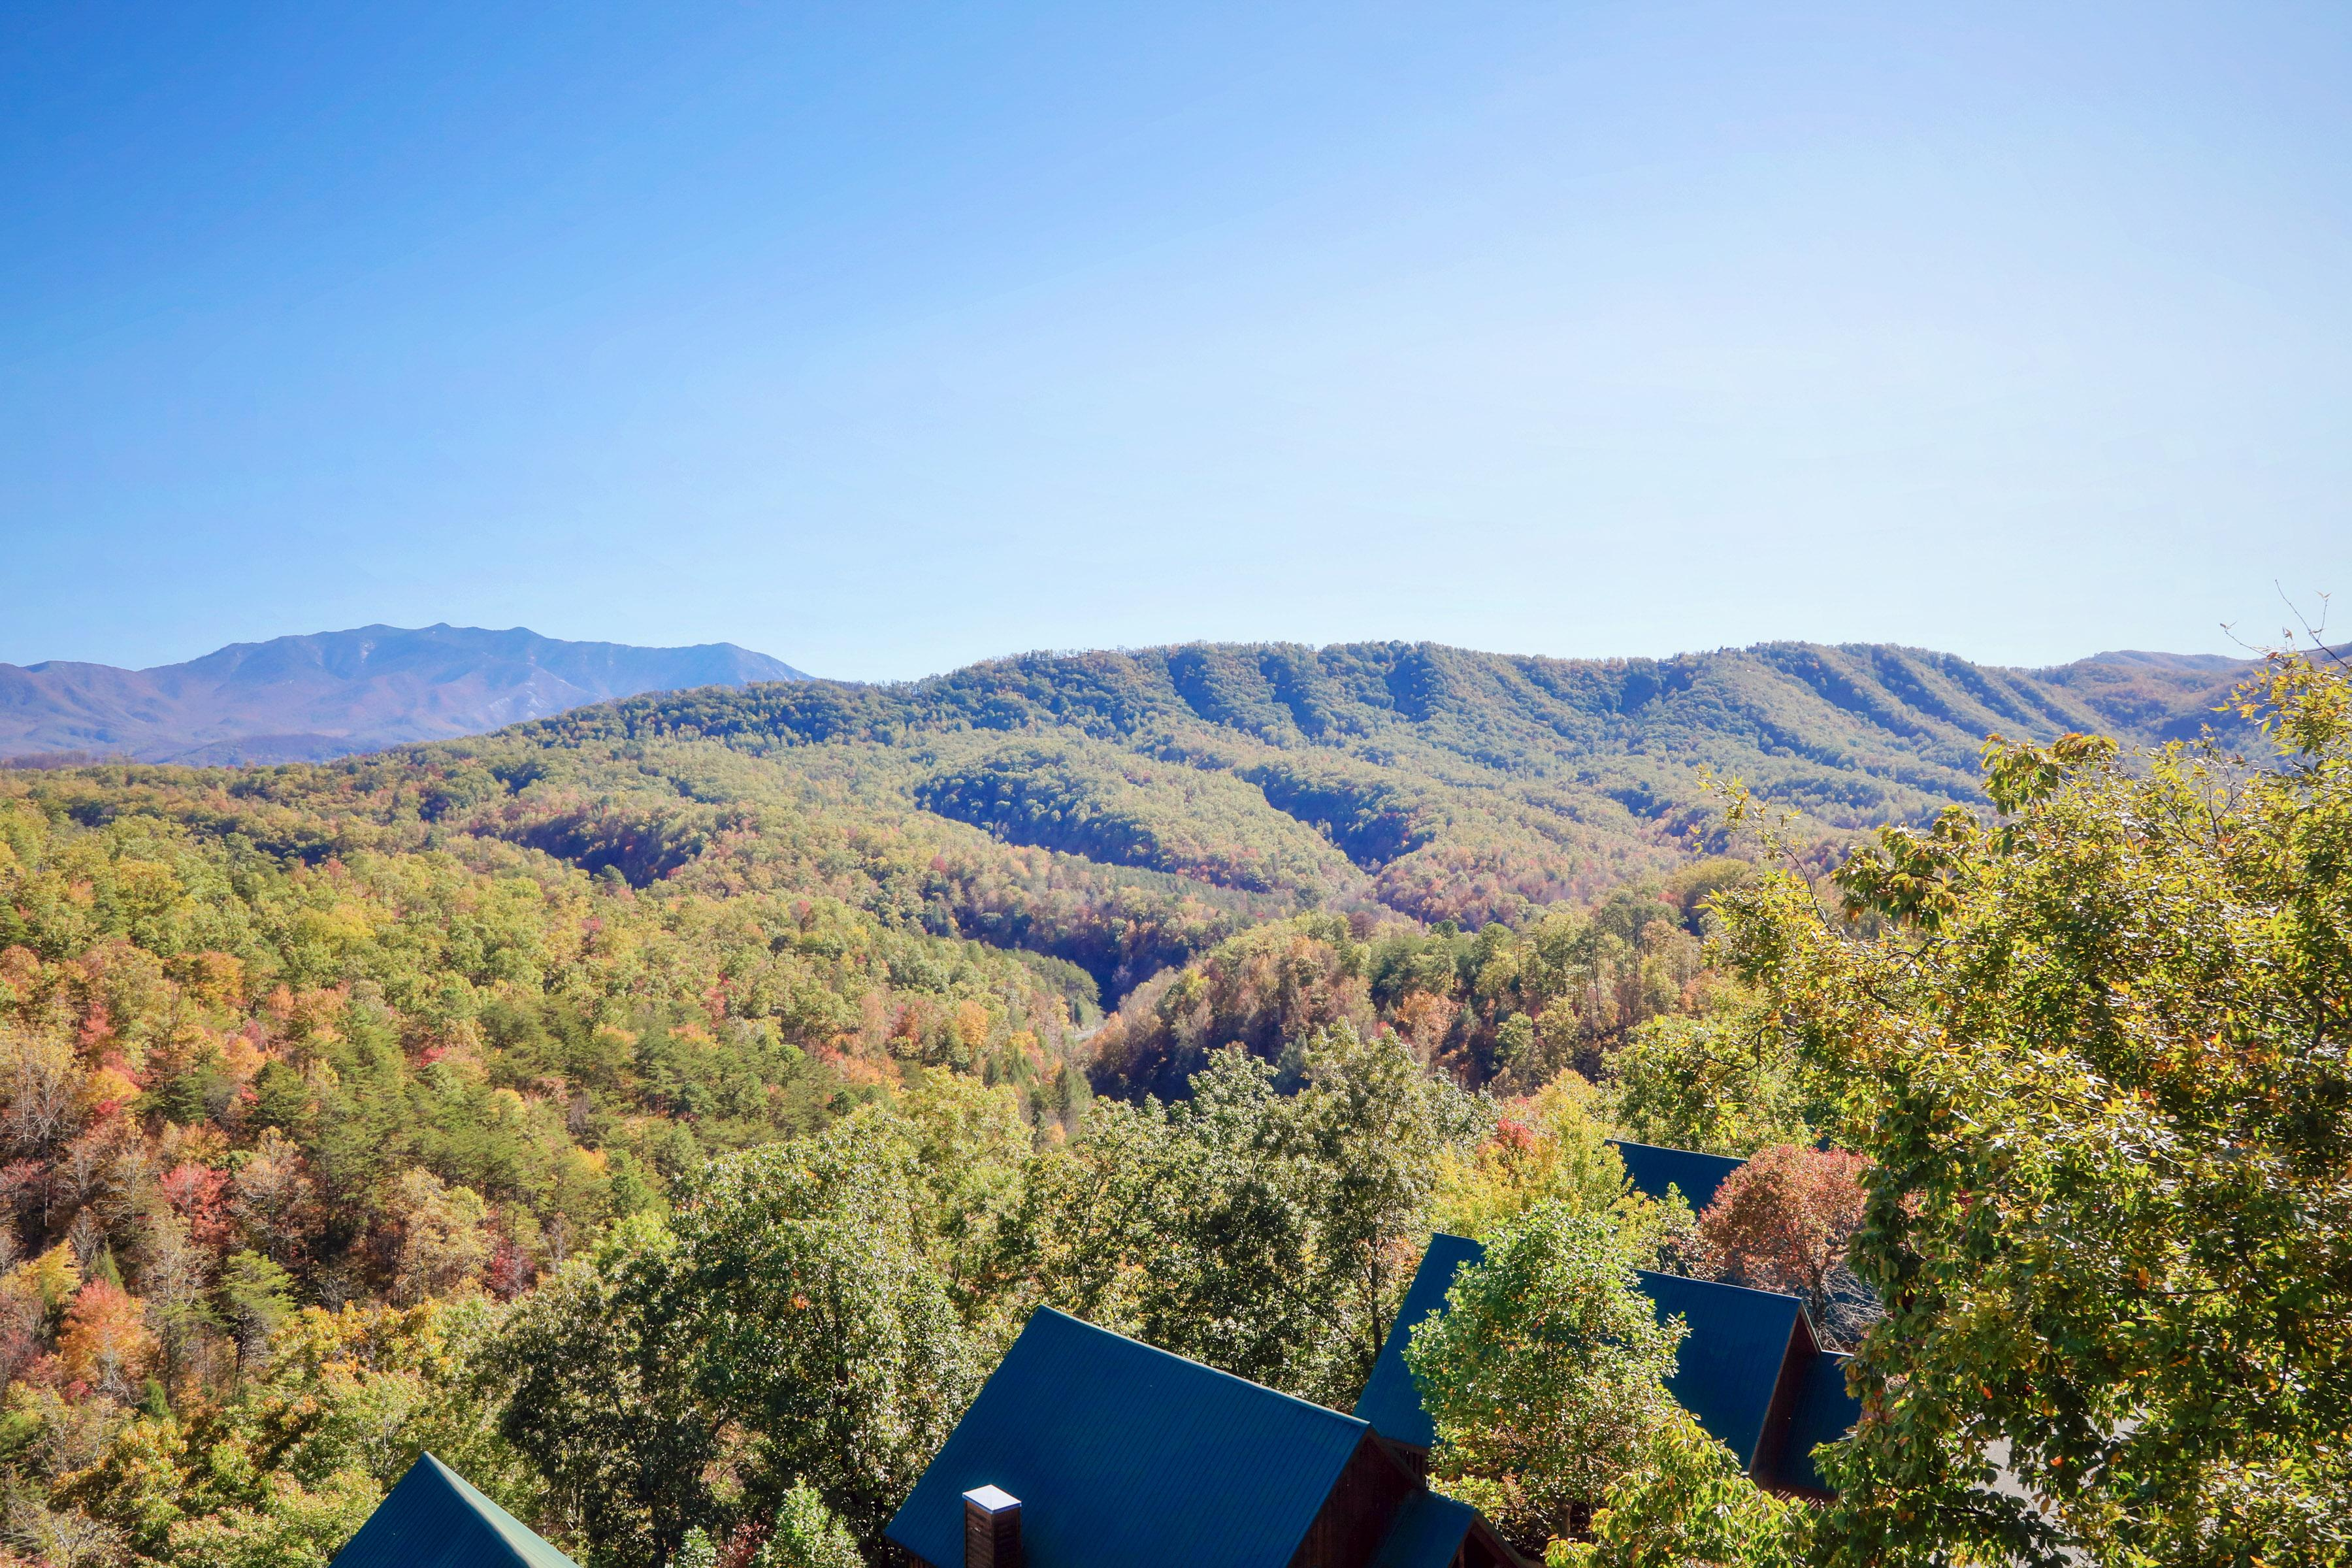 With the Great Smoky Mountains National Park within a 8 mile drive of your door, there's much for the outdoor-minded folks in your group to explore.